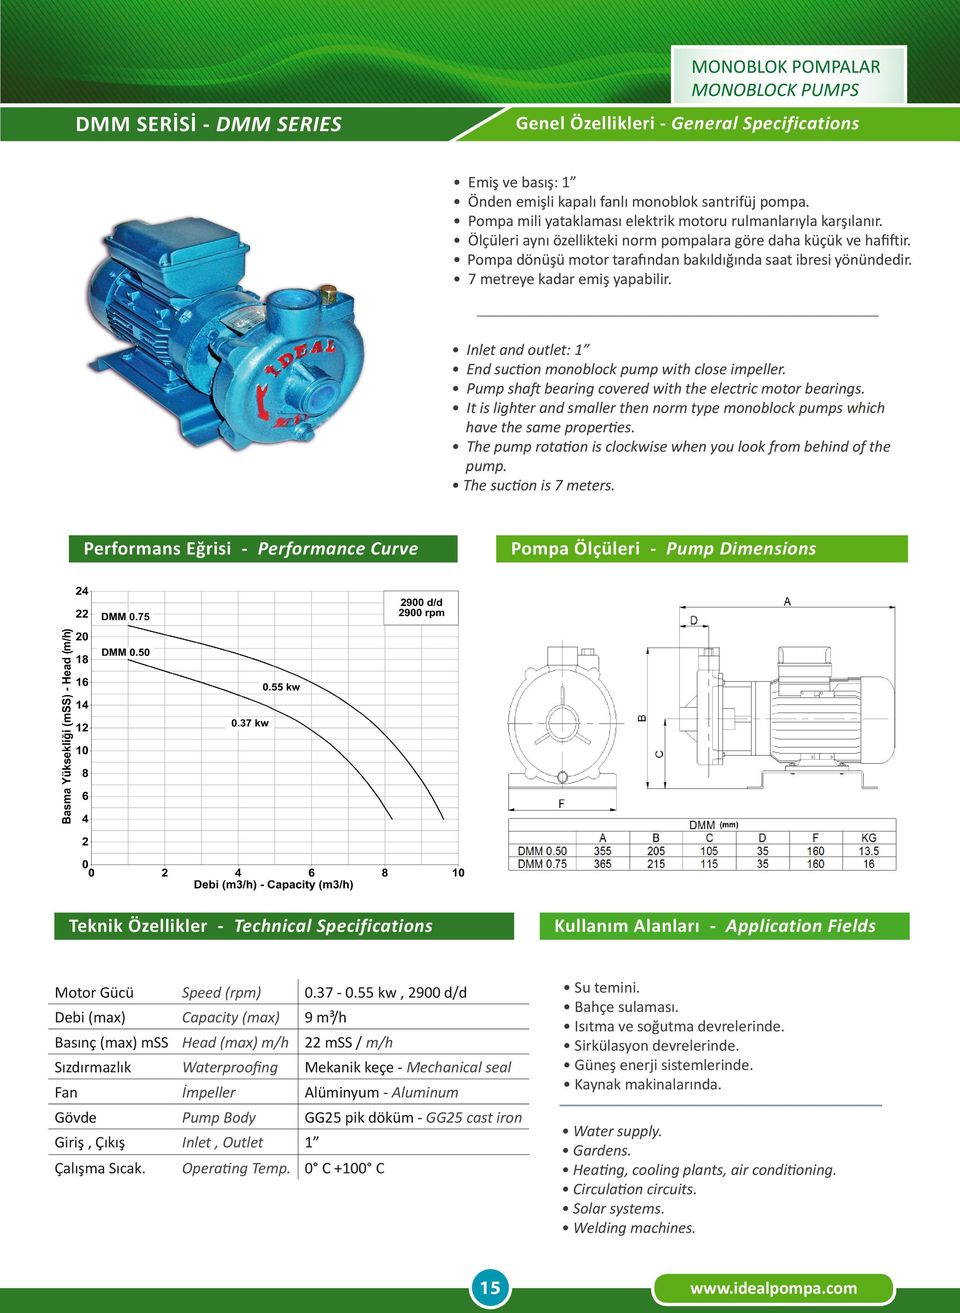 Inlet and outlet: 1 End suction monoblock pump with close impeller. Pump shaft bearing covered with the electric motor bearings.